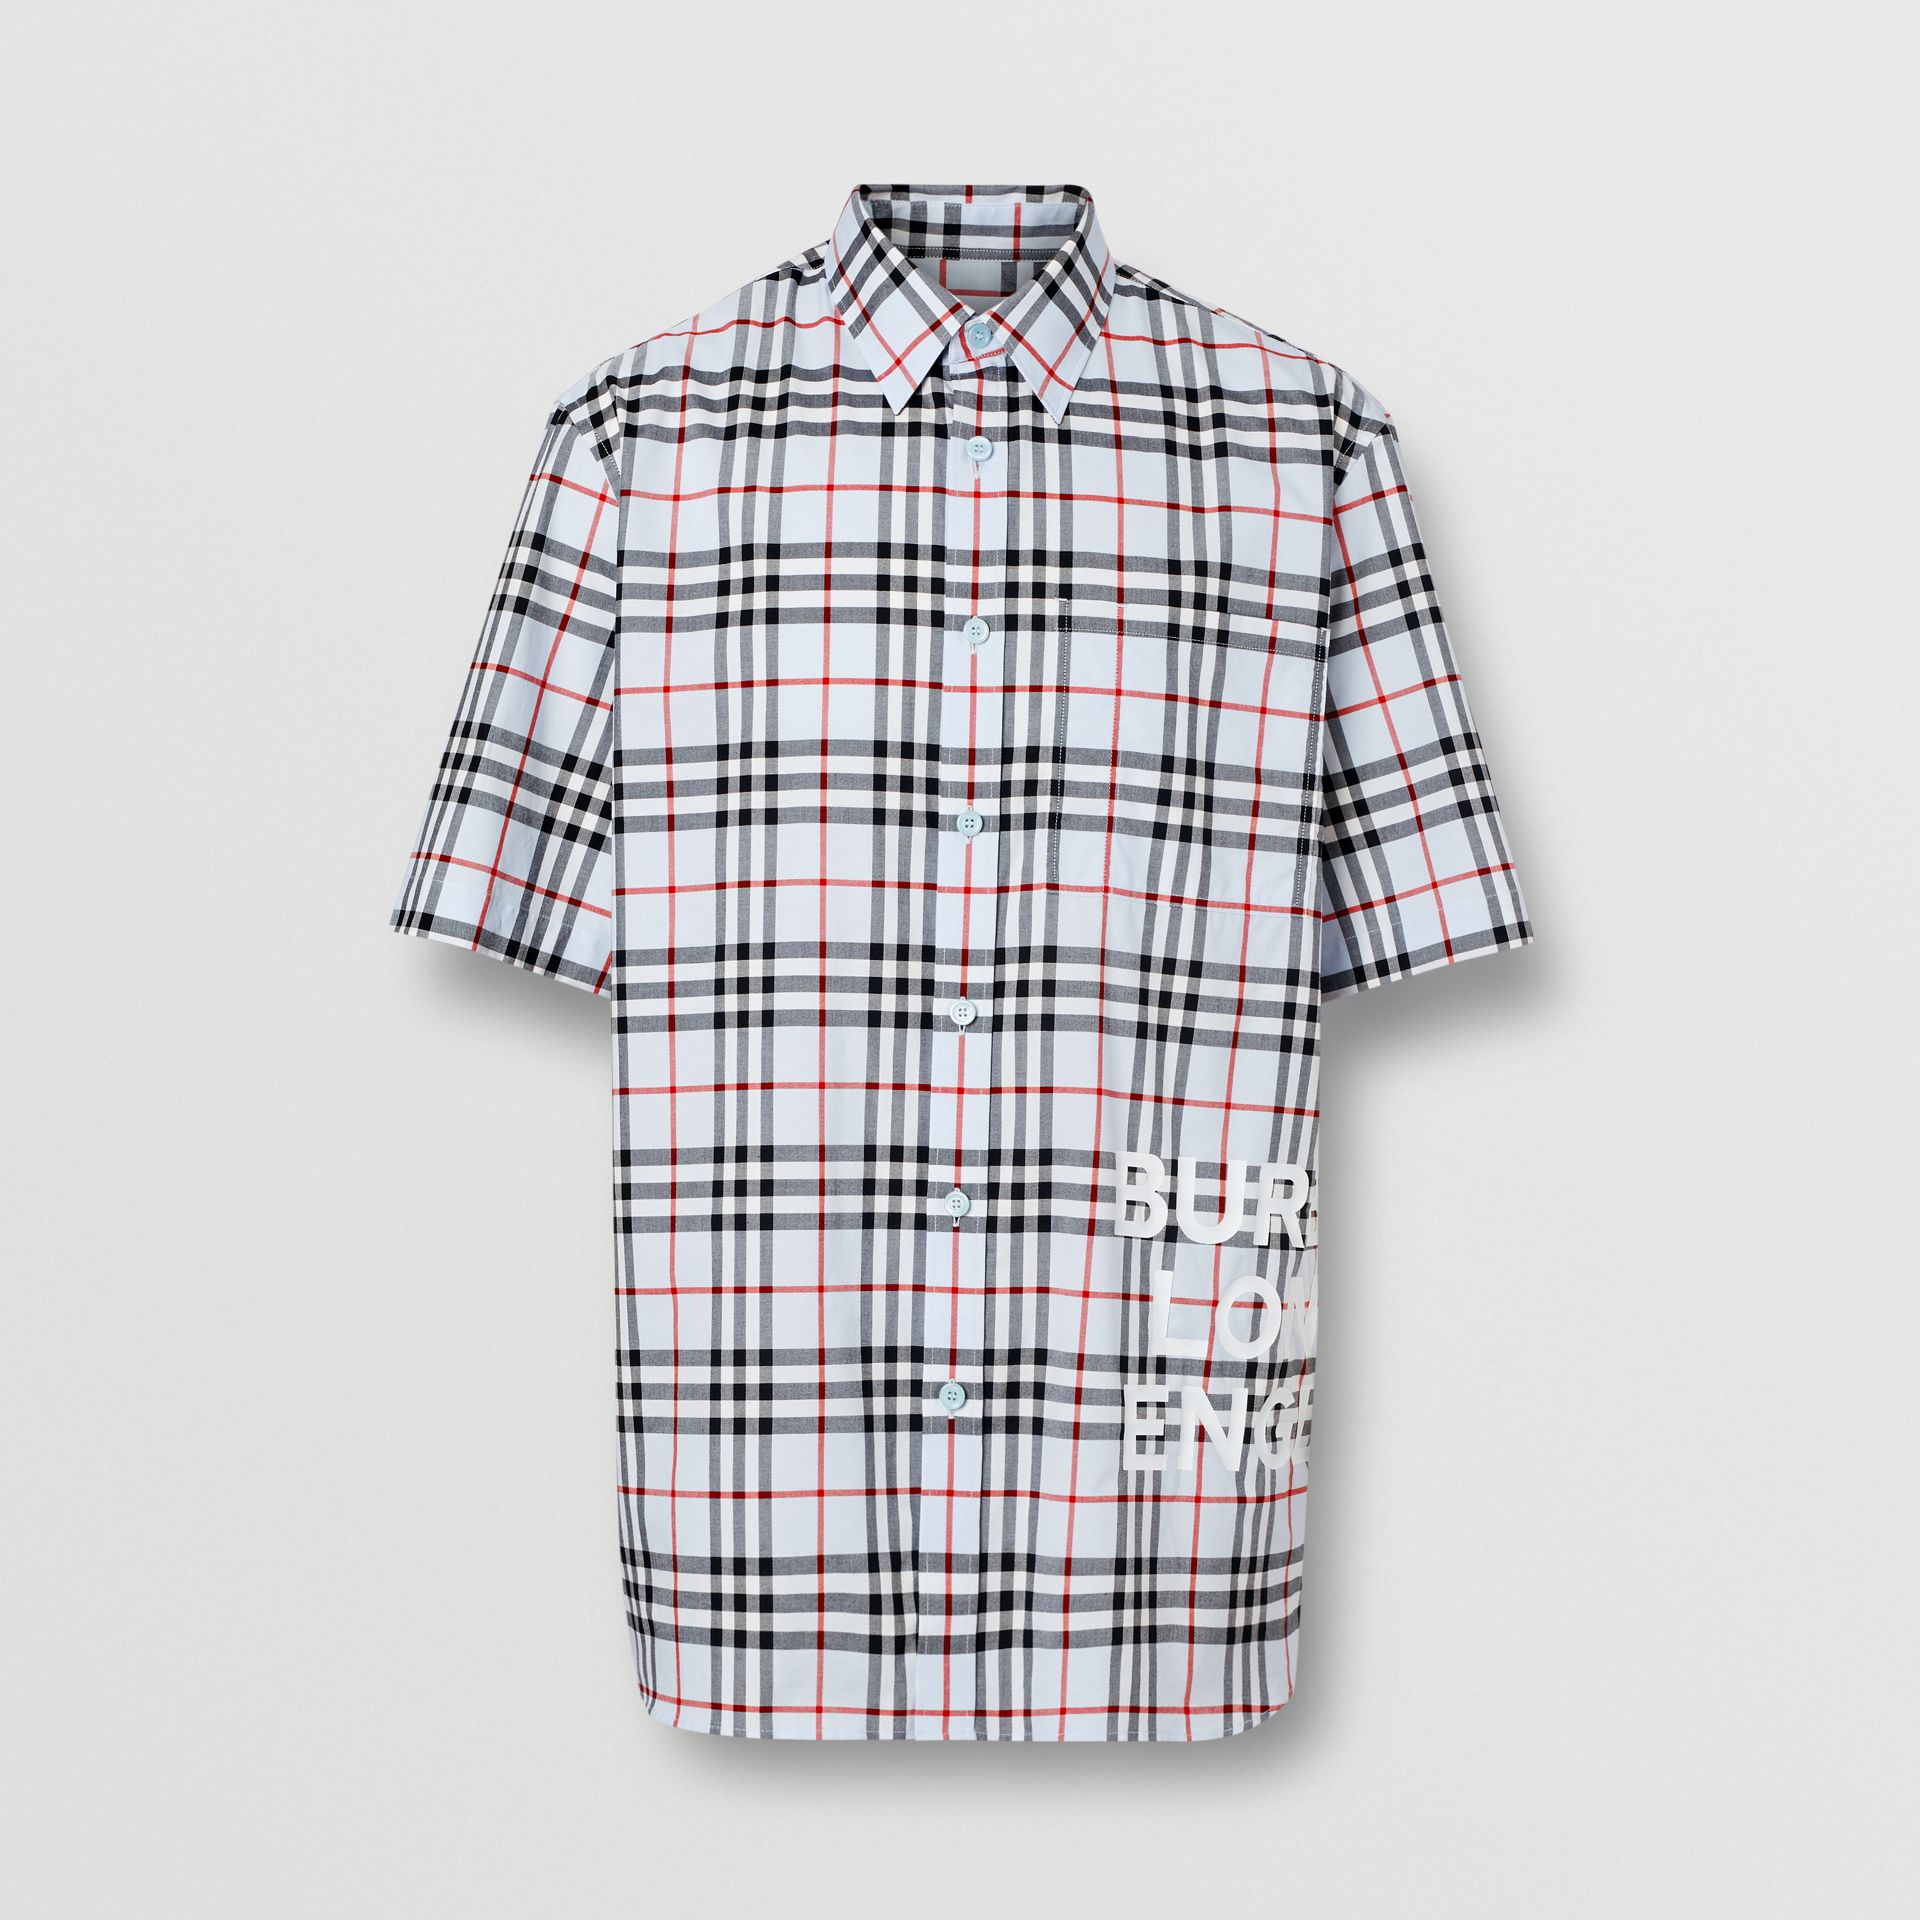 Short-sleeve Vintage Check Cotton Oversized Shirt in Pale Blue - Men | Burberry Hong Kong S.A.R - gallery image 3